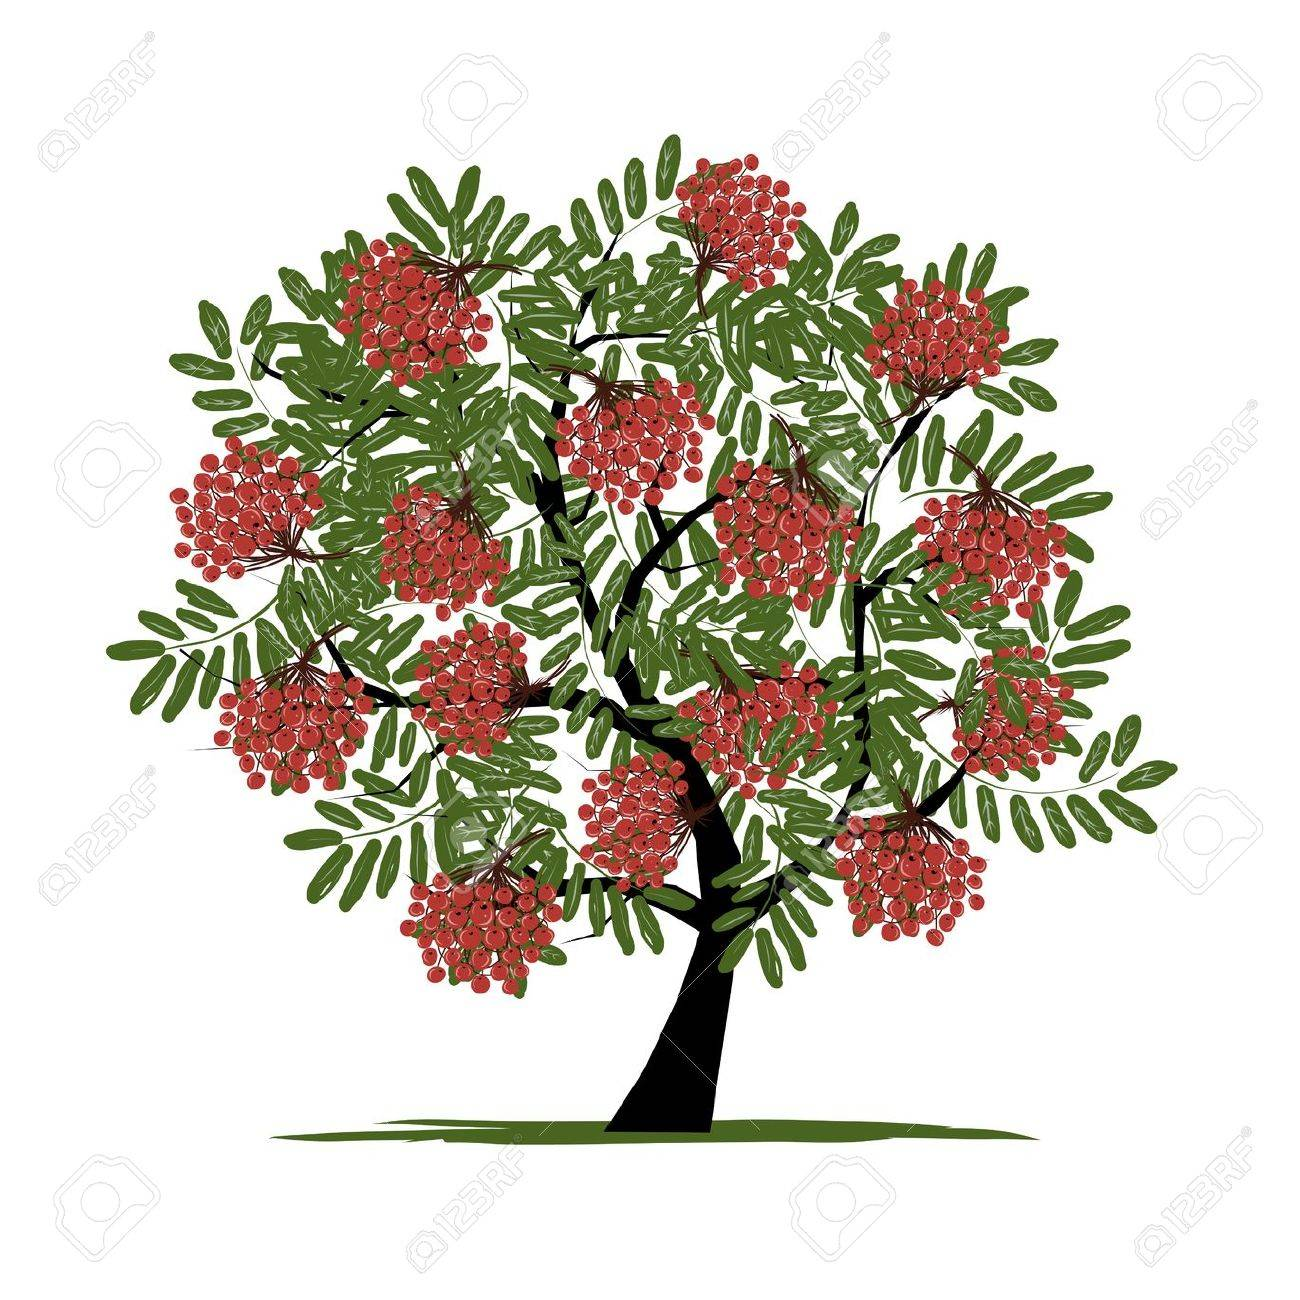 Rowan tree with berries for your design - 24753712